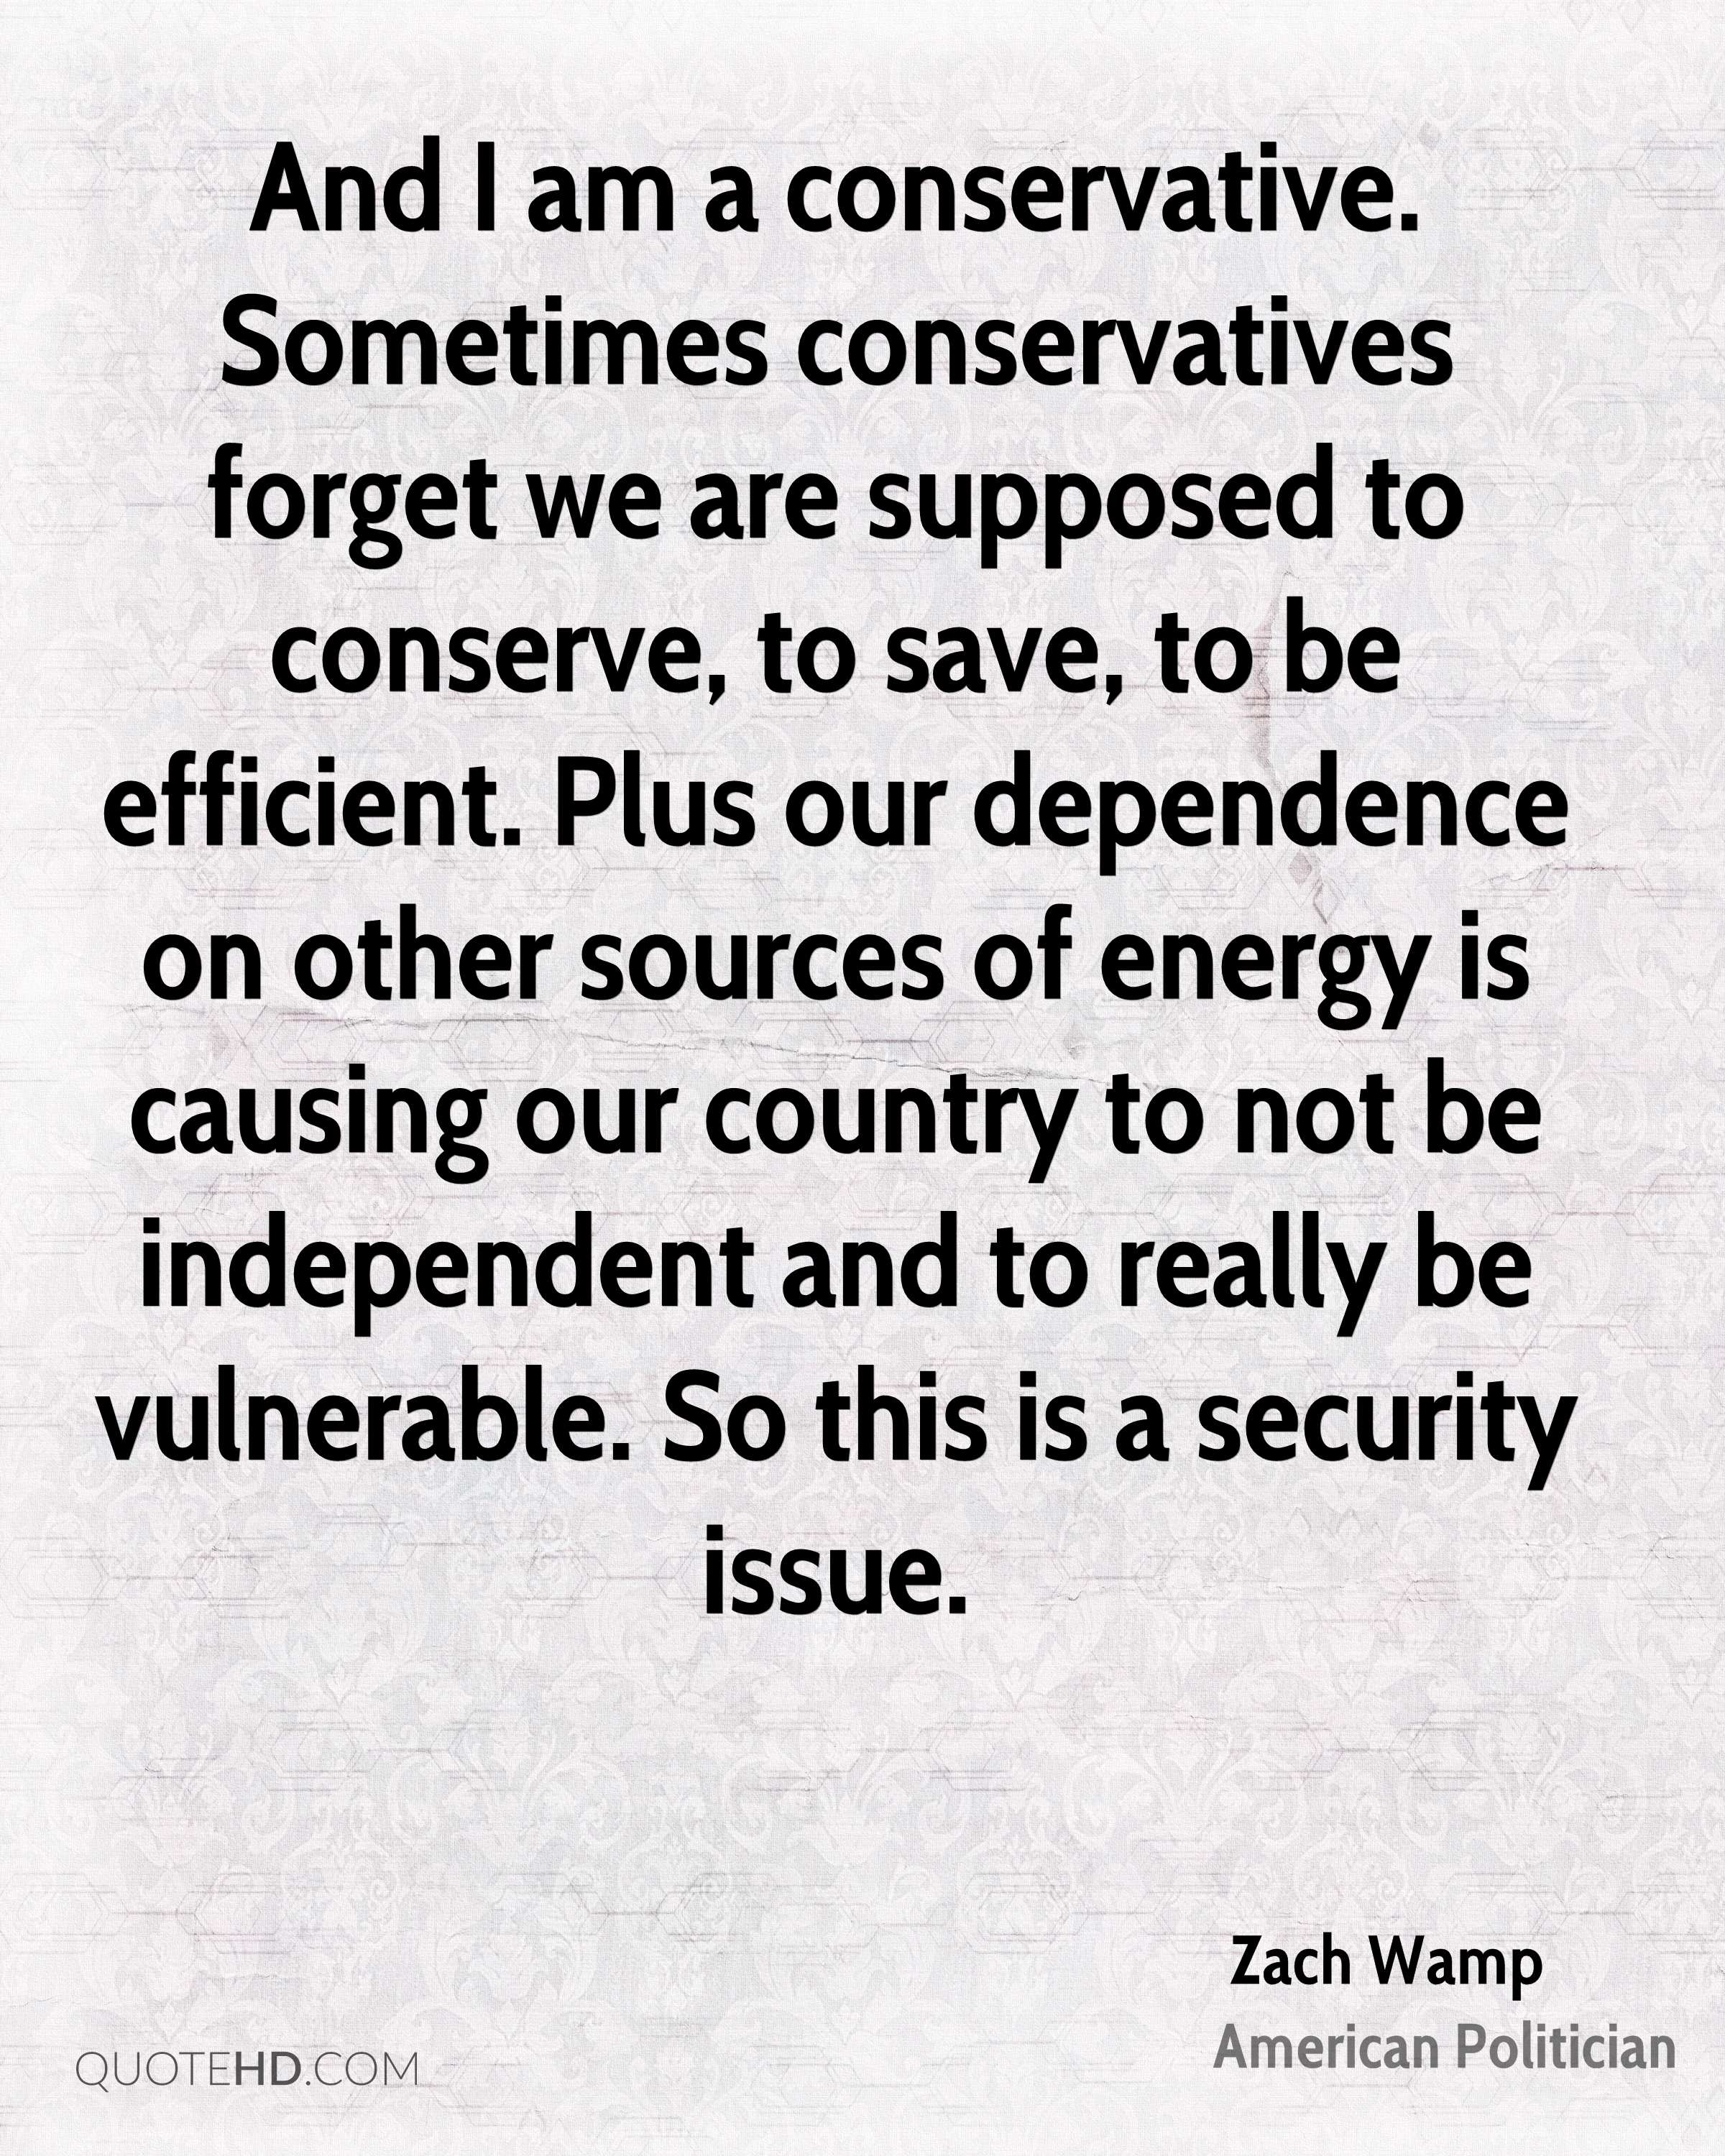 And I am a conservative. Sometimes conservatives forget we are supposed to conserve, to save, to be efficient. Plus our dependence on other sources of energy is causing our country to not be independent and to really be vulnerable. So this is a security issue.